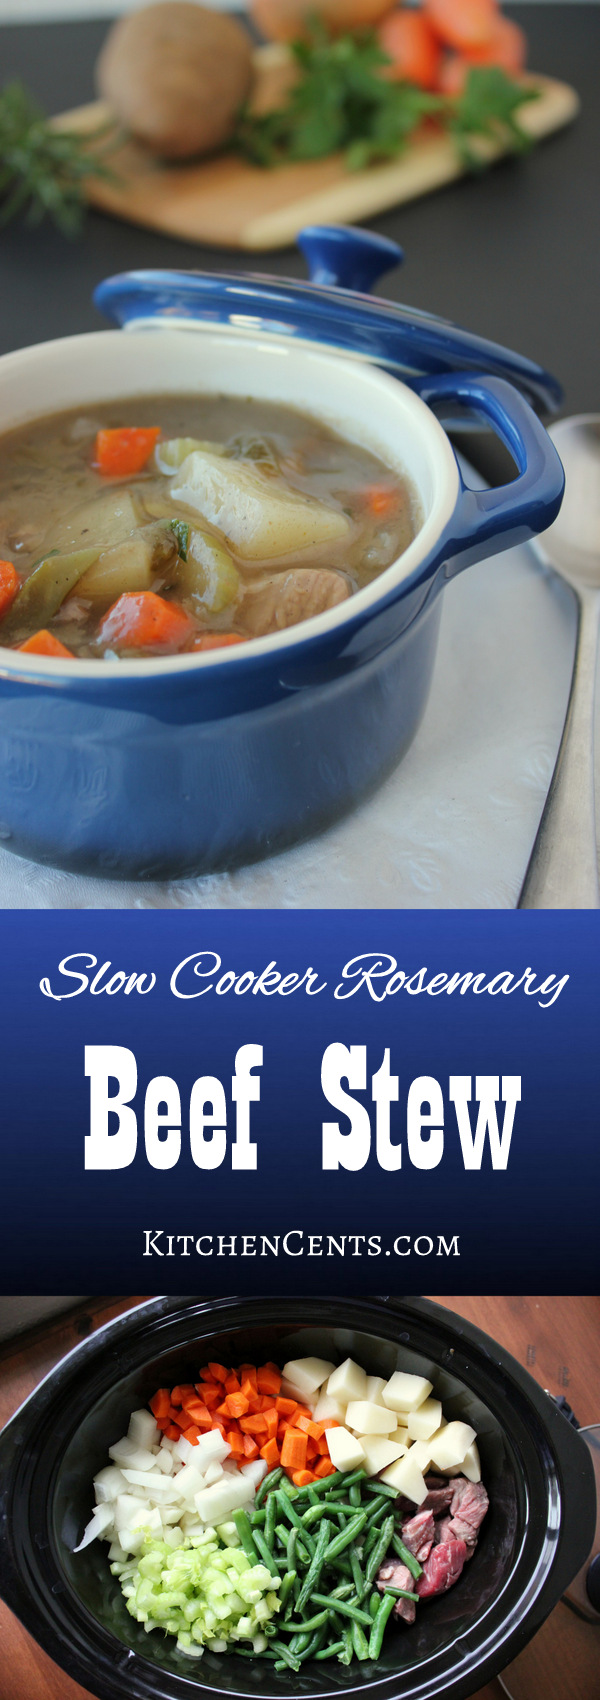 Slow Cooker Rosemary Beef Stew | KitchenCents.com